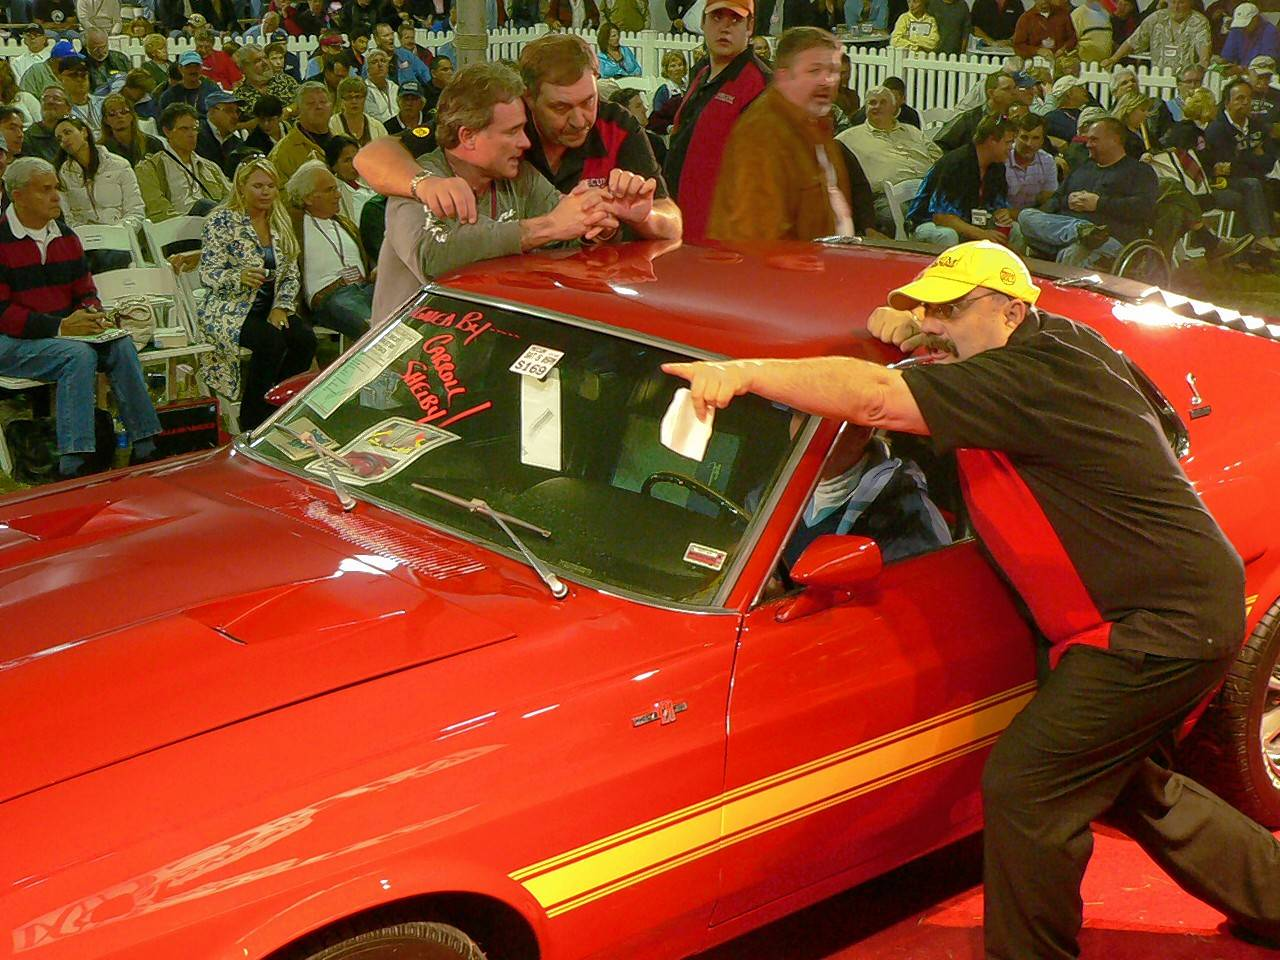 A sure place to find Dana Mecum at the auctions is right in the thick of the action. In this image from an early Mecum event, a rare 1970 Shelby GT500 Mustang crosses the block.